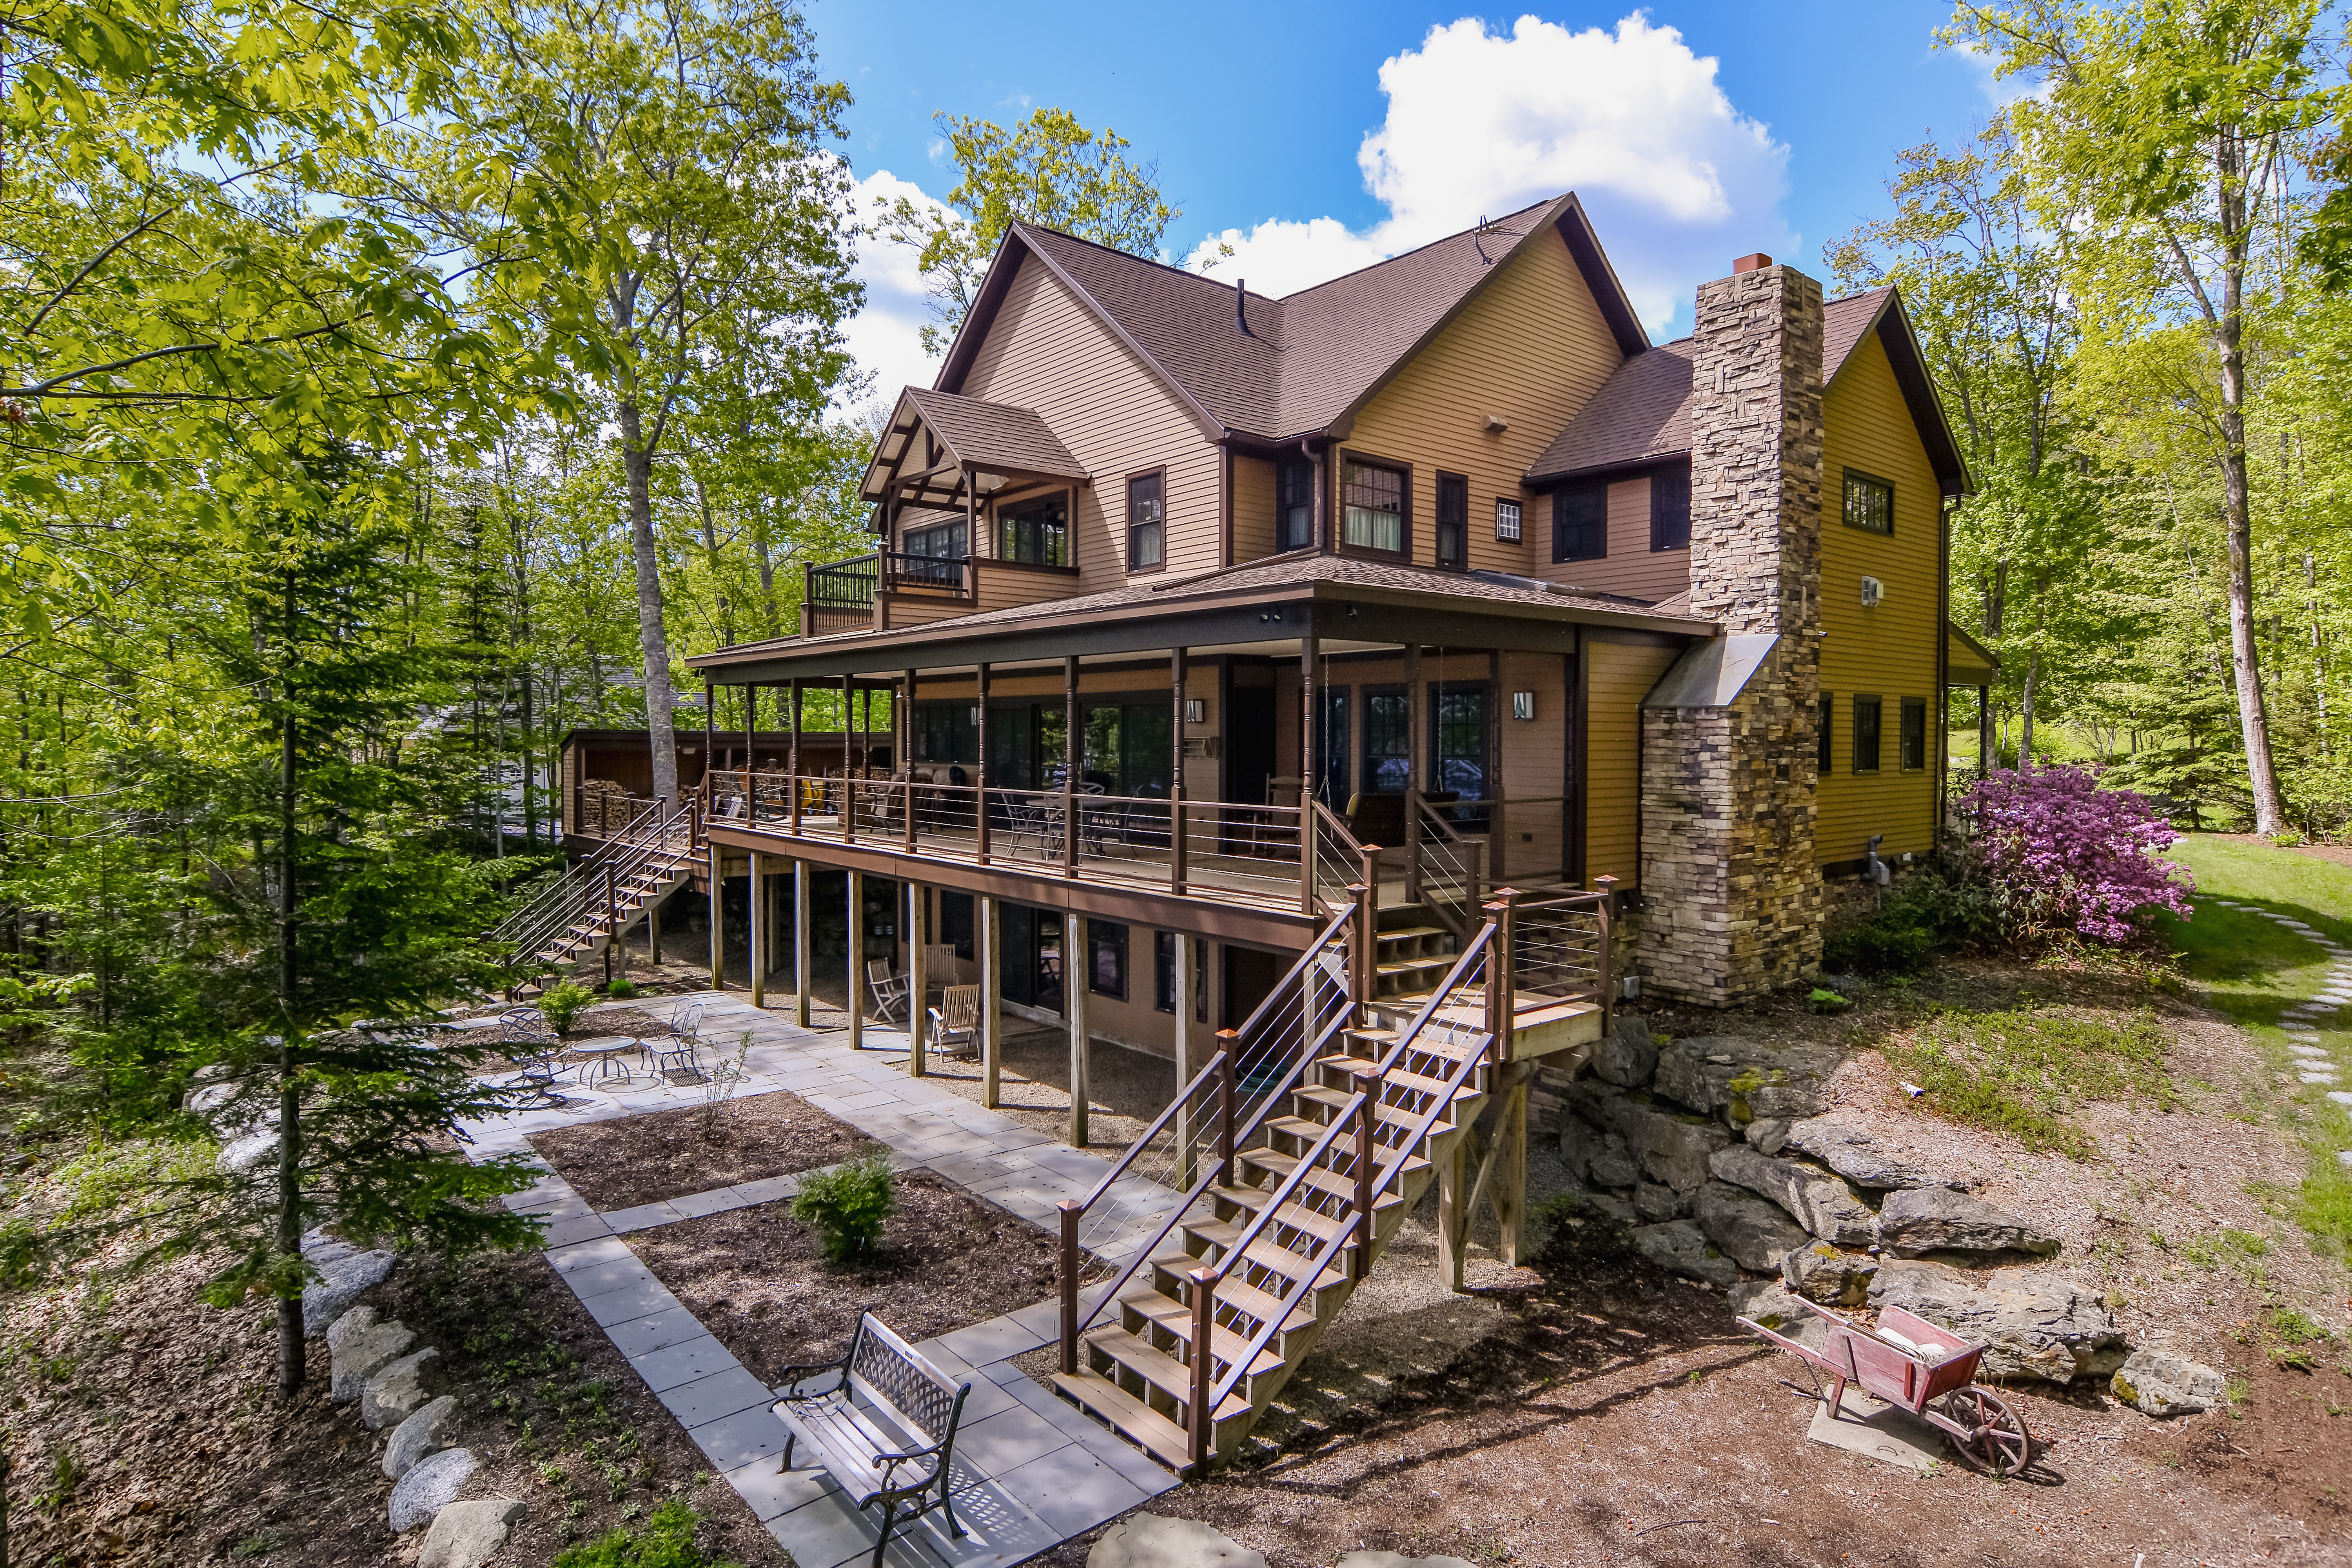 brooke luxurious sale cottages views knoxville s spectacular pin maine lake in waterfront from located west for direction home lash every showcases